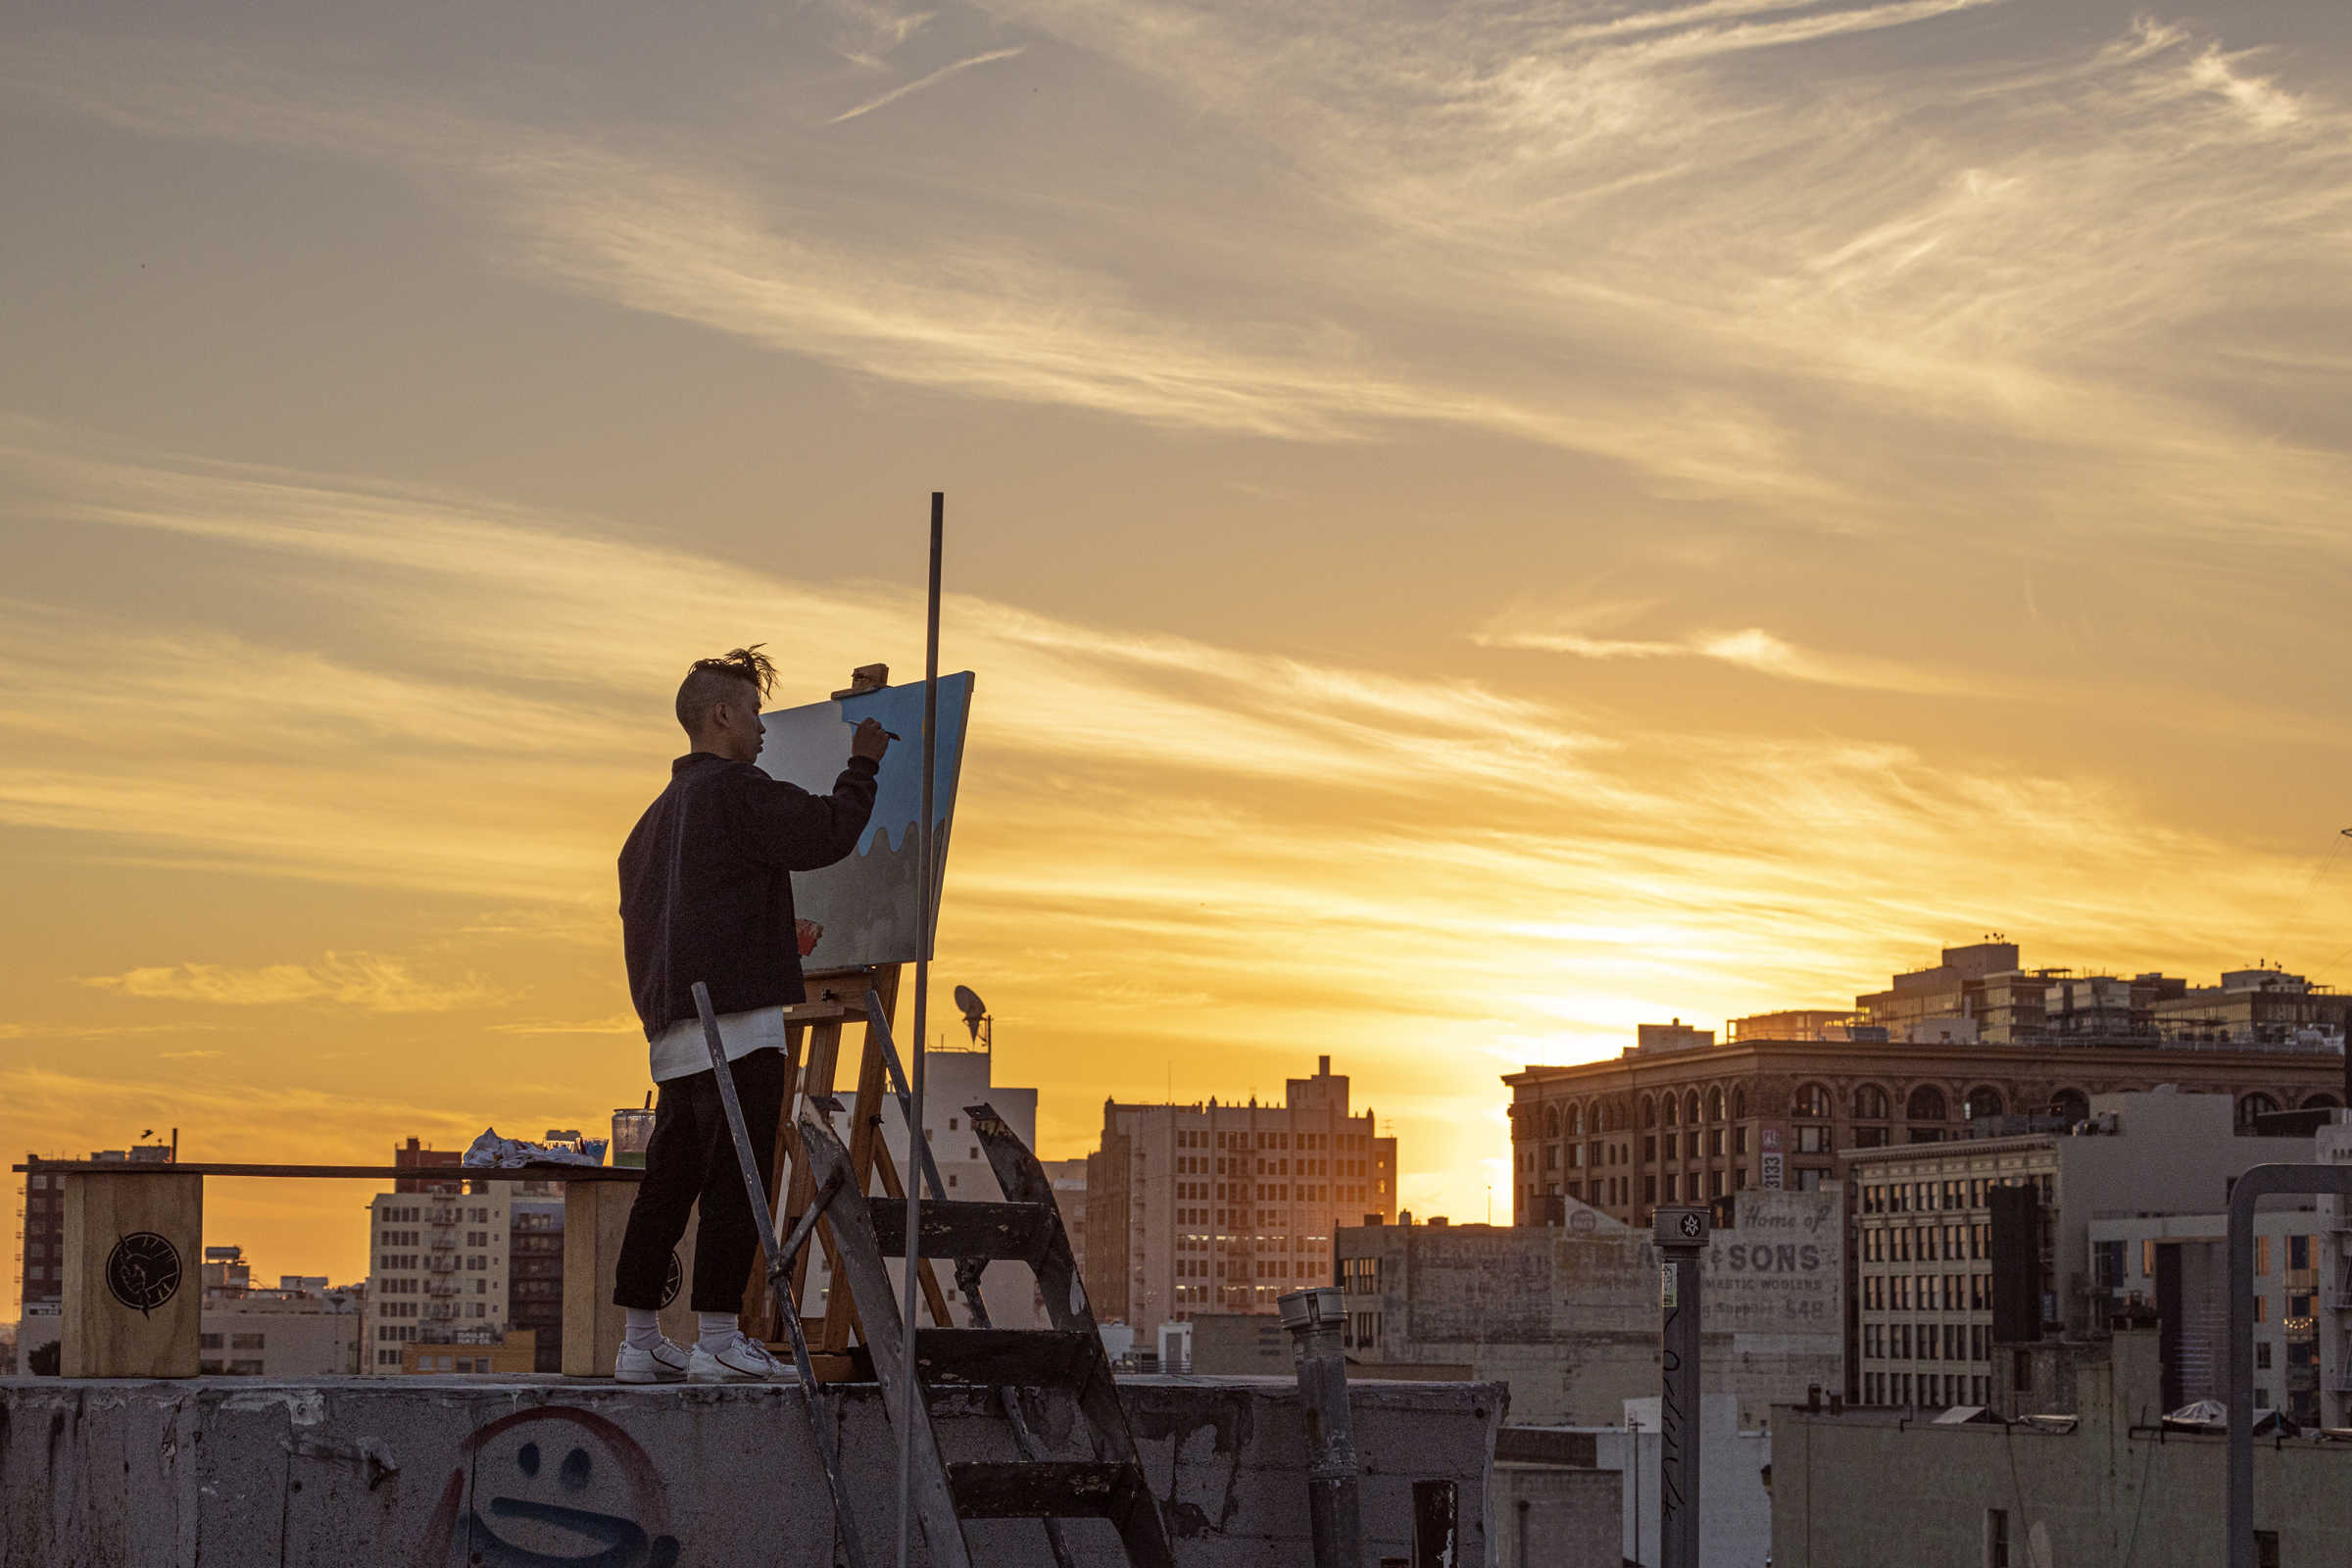 Young man painting on a city rooftop at sunset